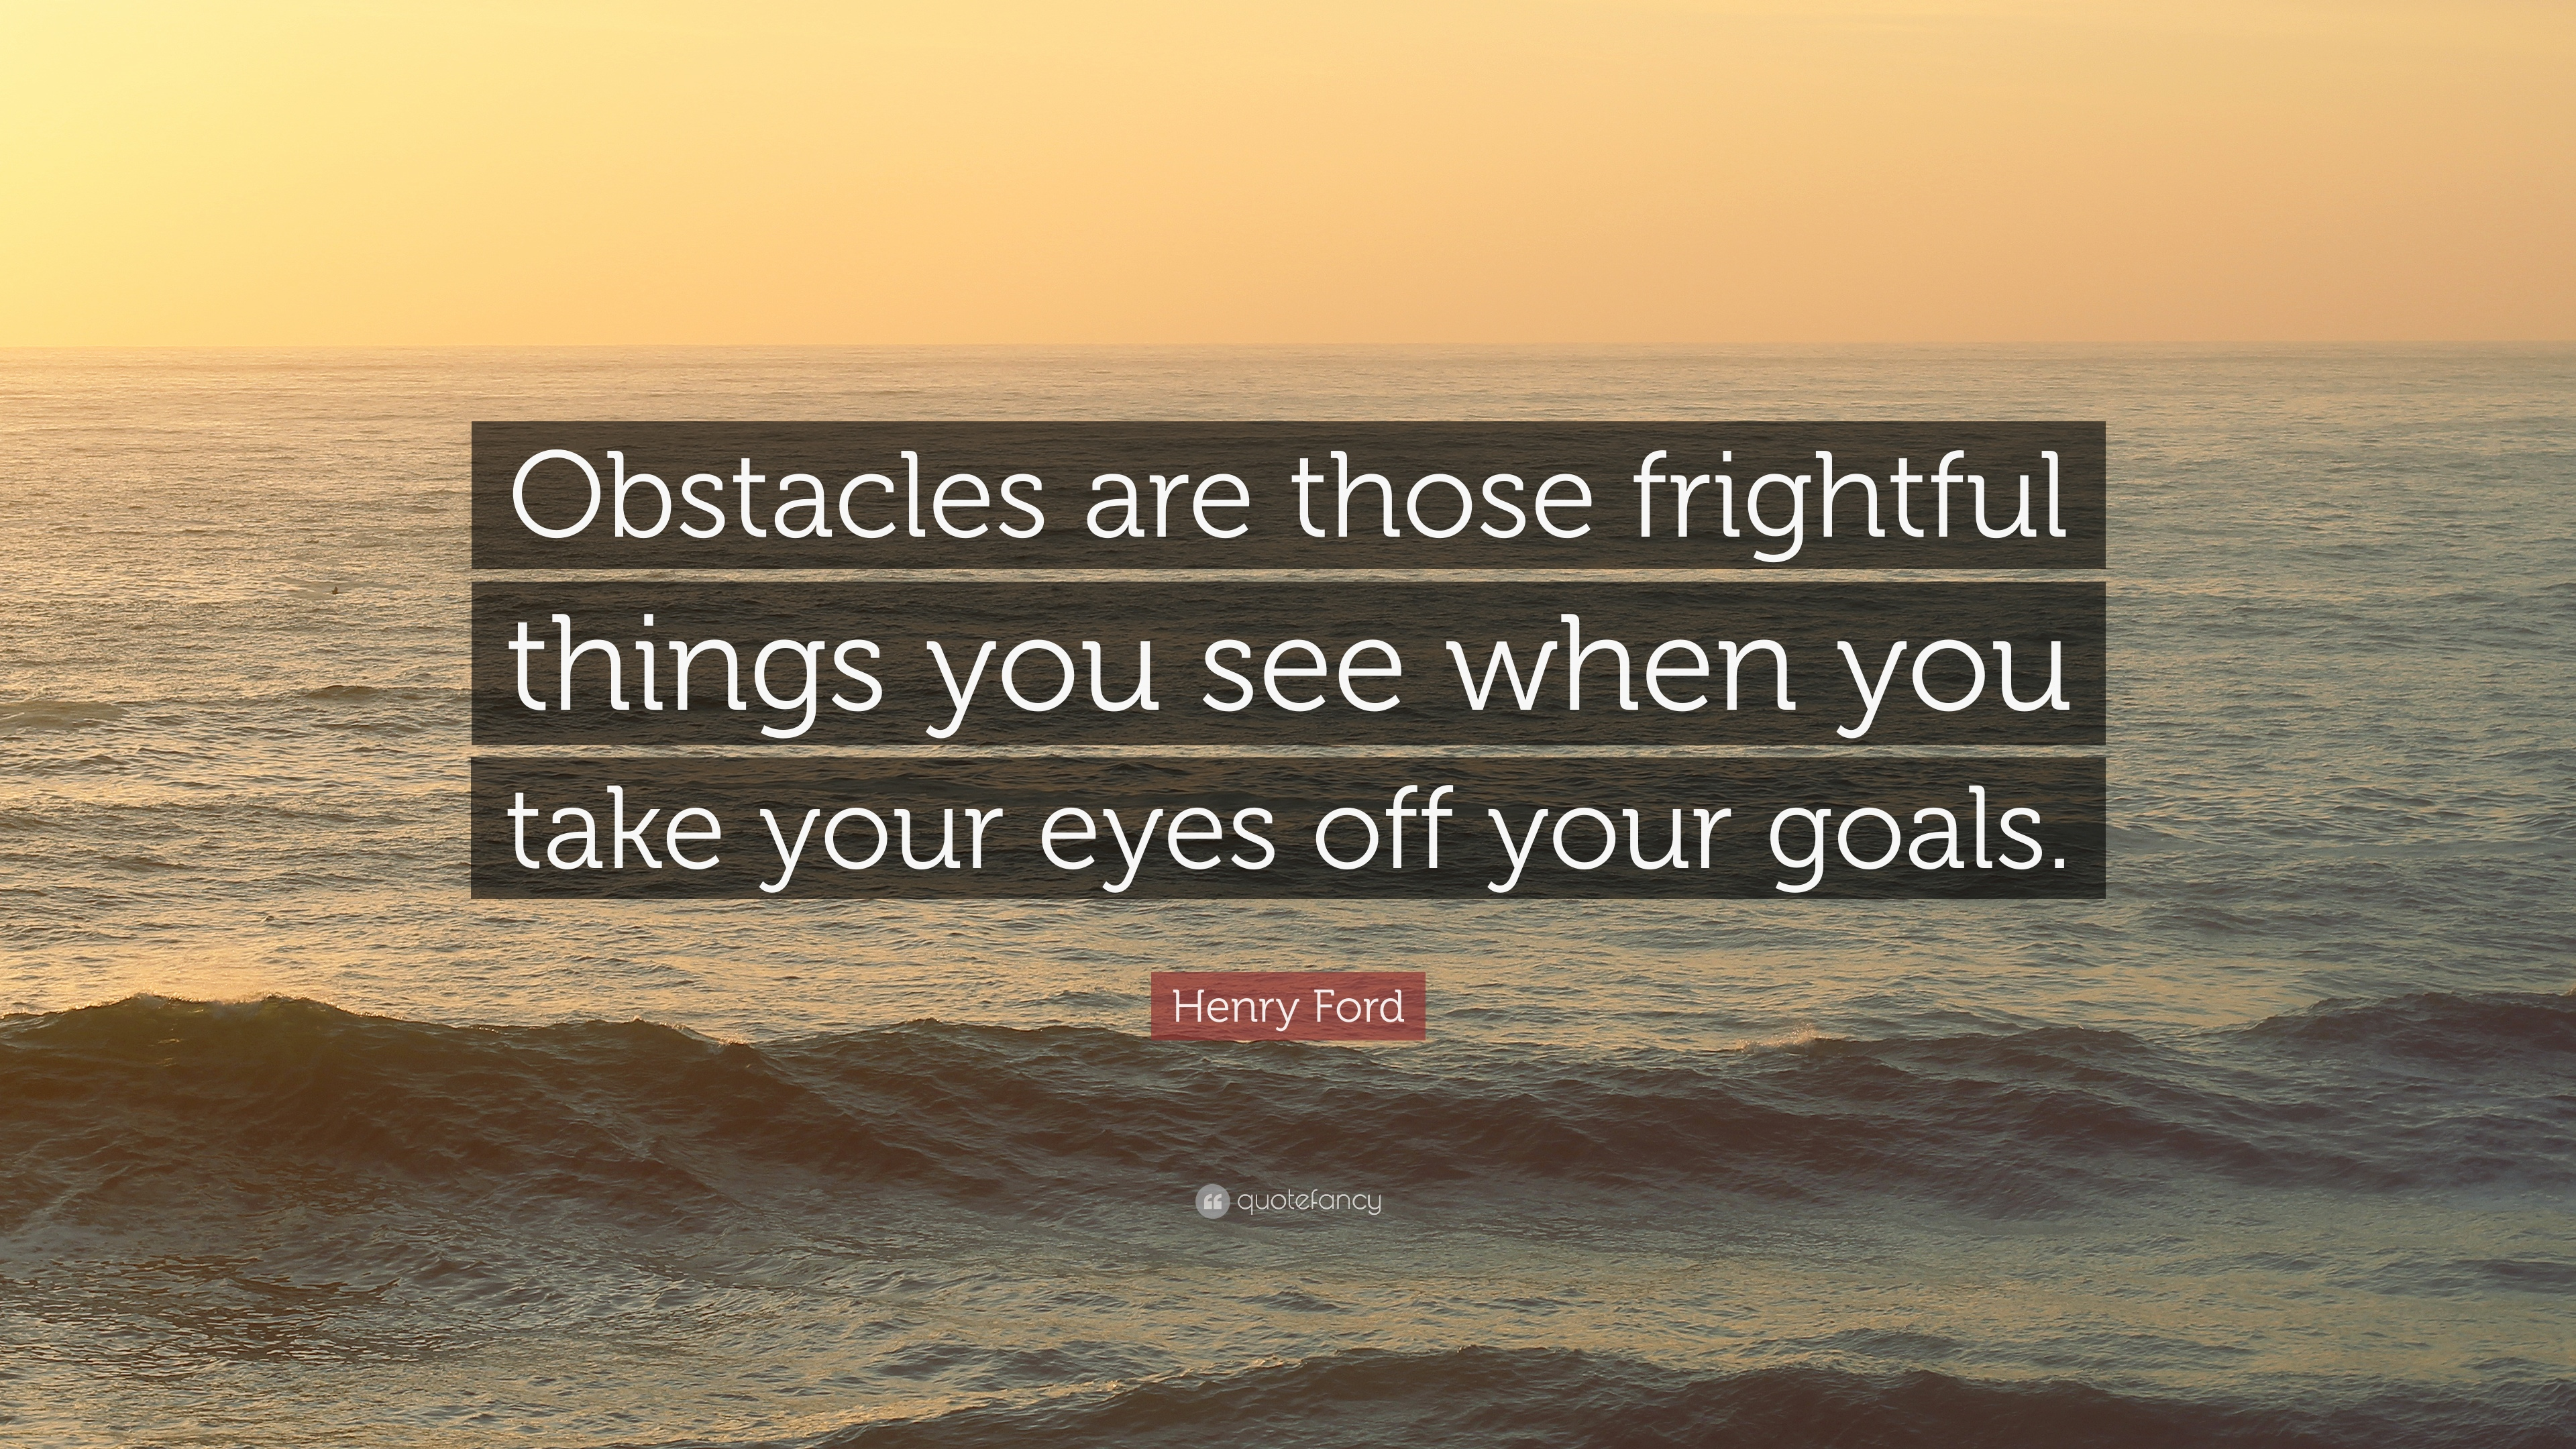 Henry Ford Quote Obstacles Are Those Frightful Things You See When